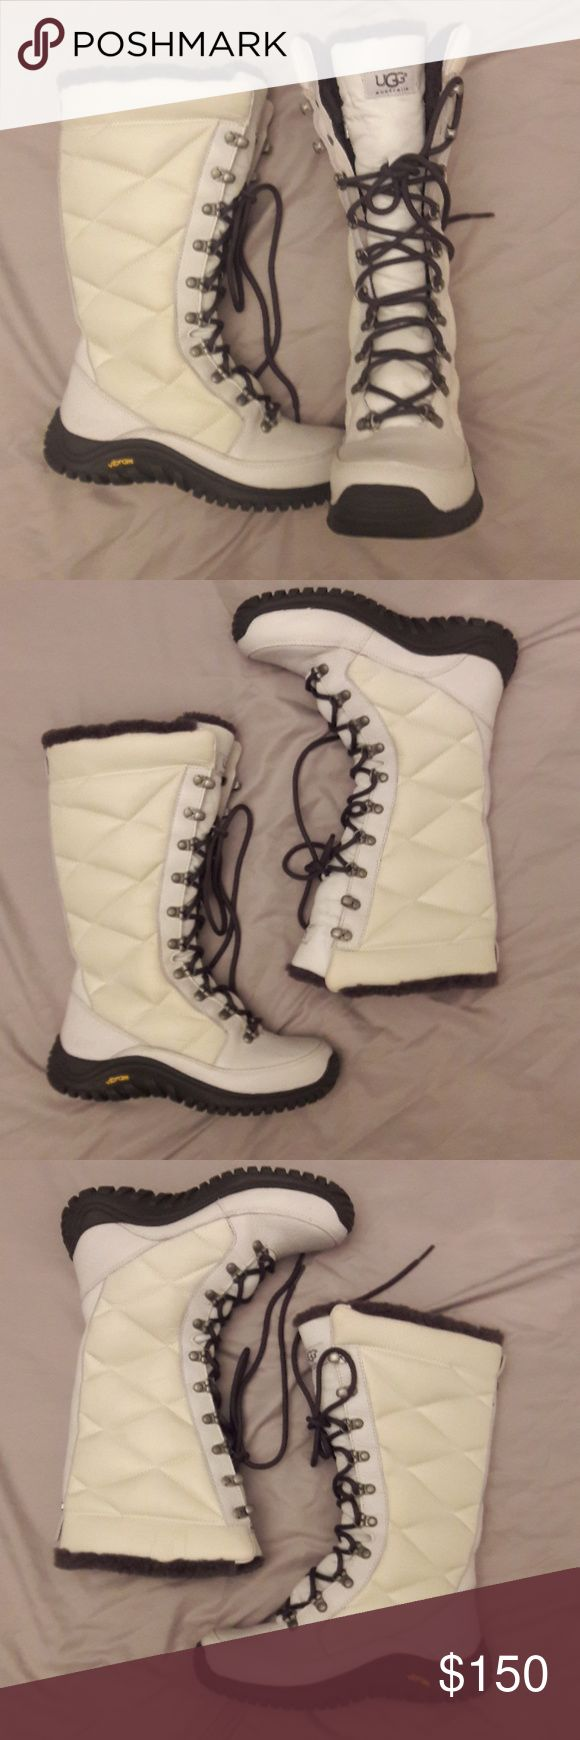 UGG vibram ski boots Ugg Vibram ski boots size 6 leather and sheepskin. Beautiful winter white quilted exterior leather and brown sheepskin lining.  Event waterproof fabric. Item code F 80128 H.   Excellent condition, worn once indoors. UGG Shoes Winter & Rain Boots